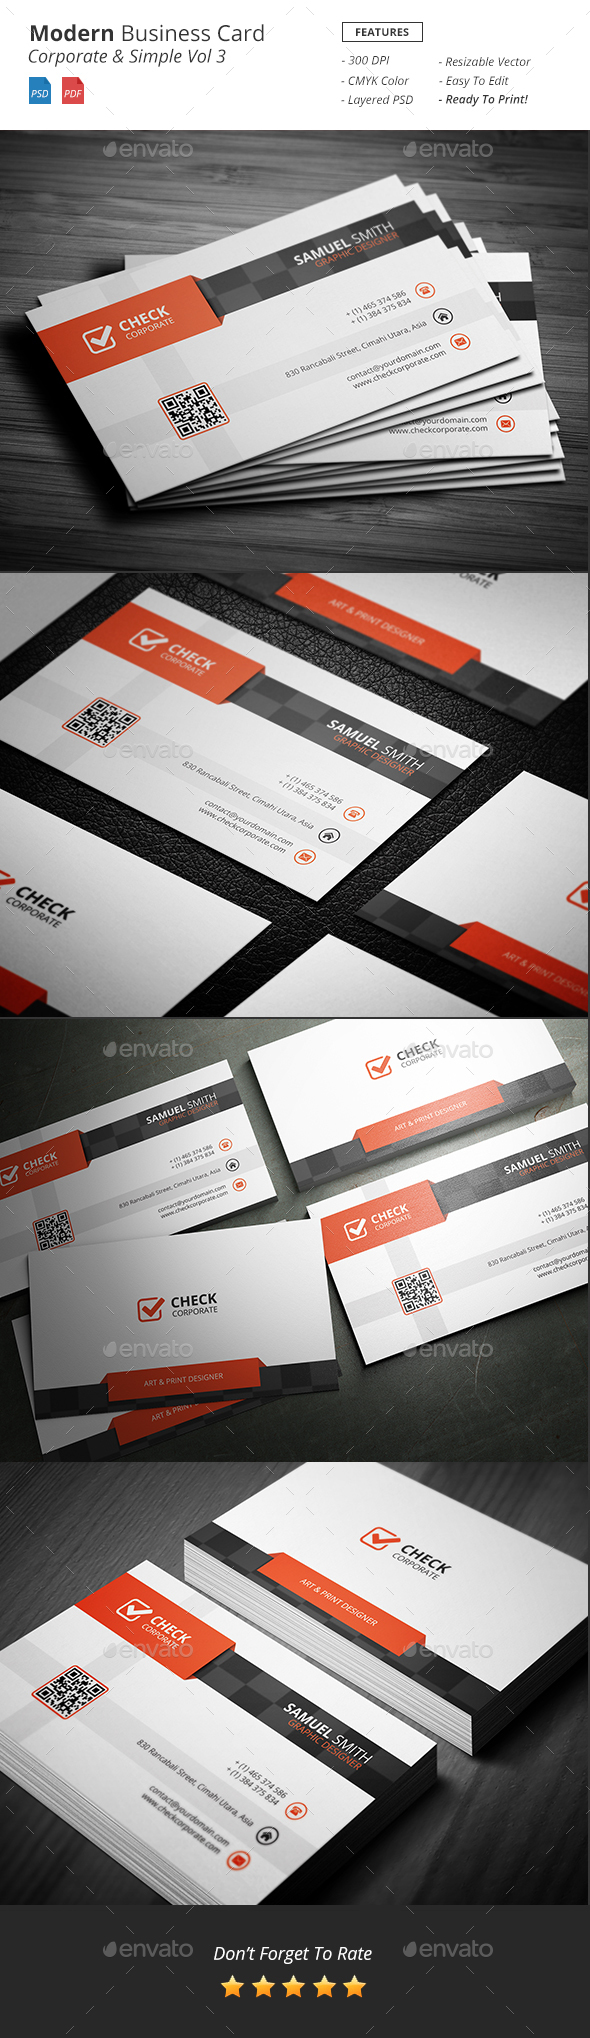 Modern - Corporate Business Card Vol 3 - Corporate Business Cards